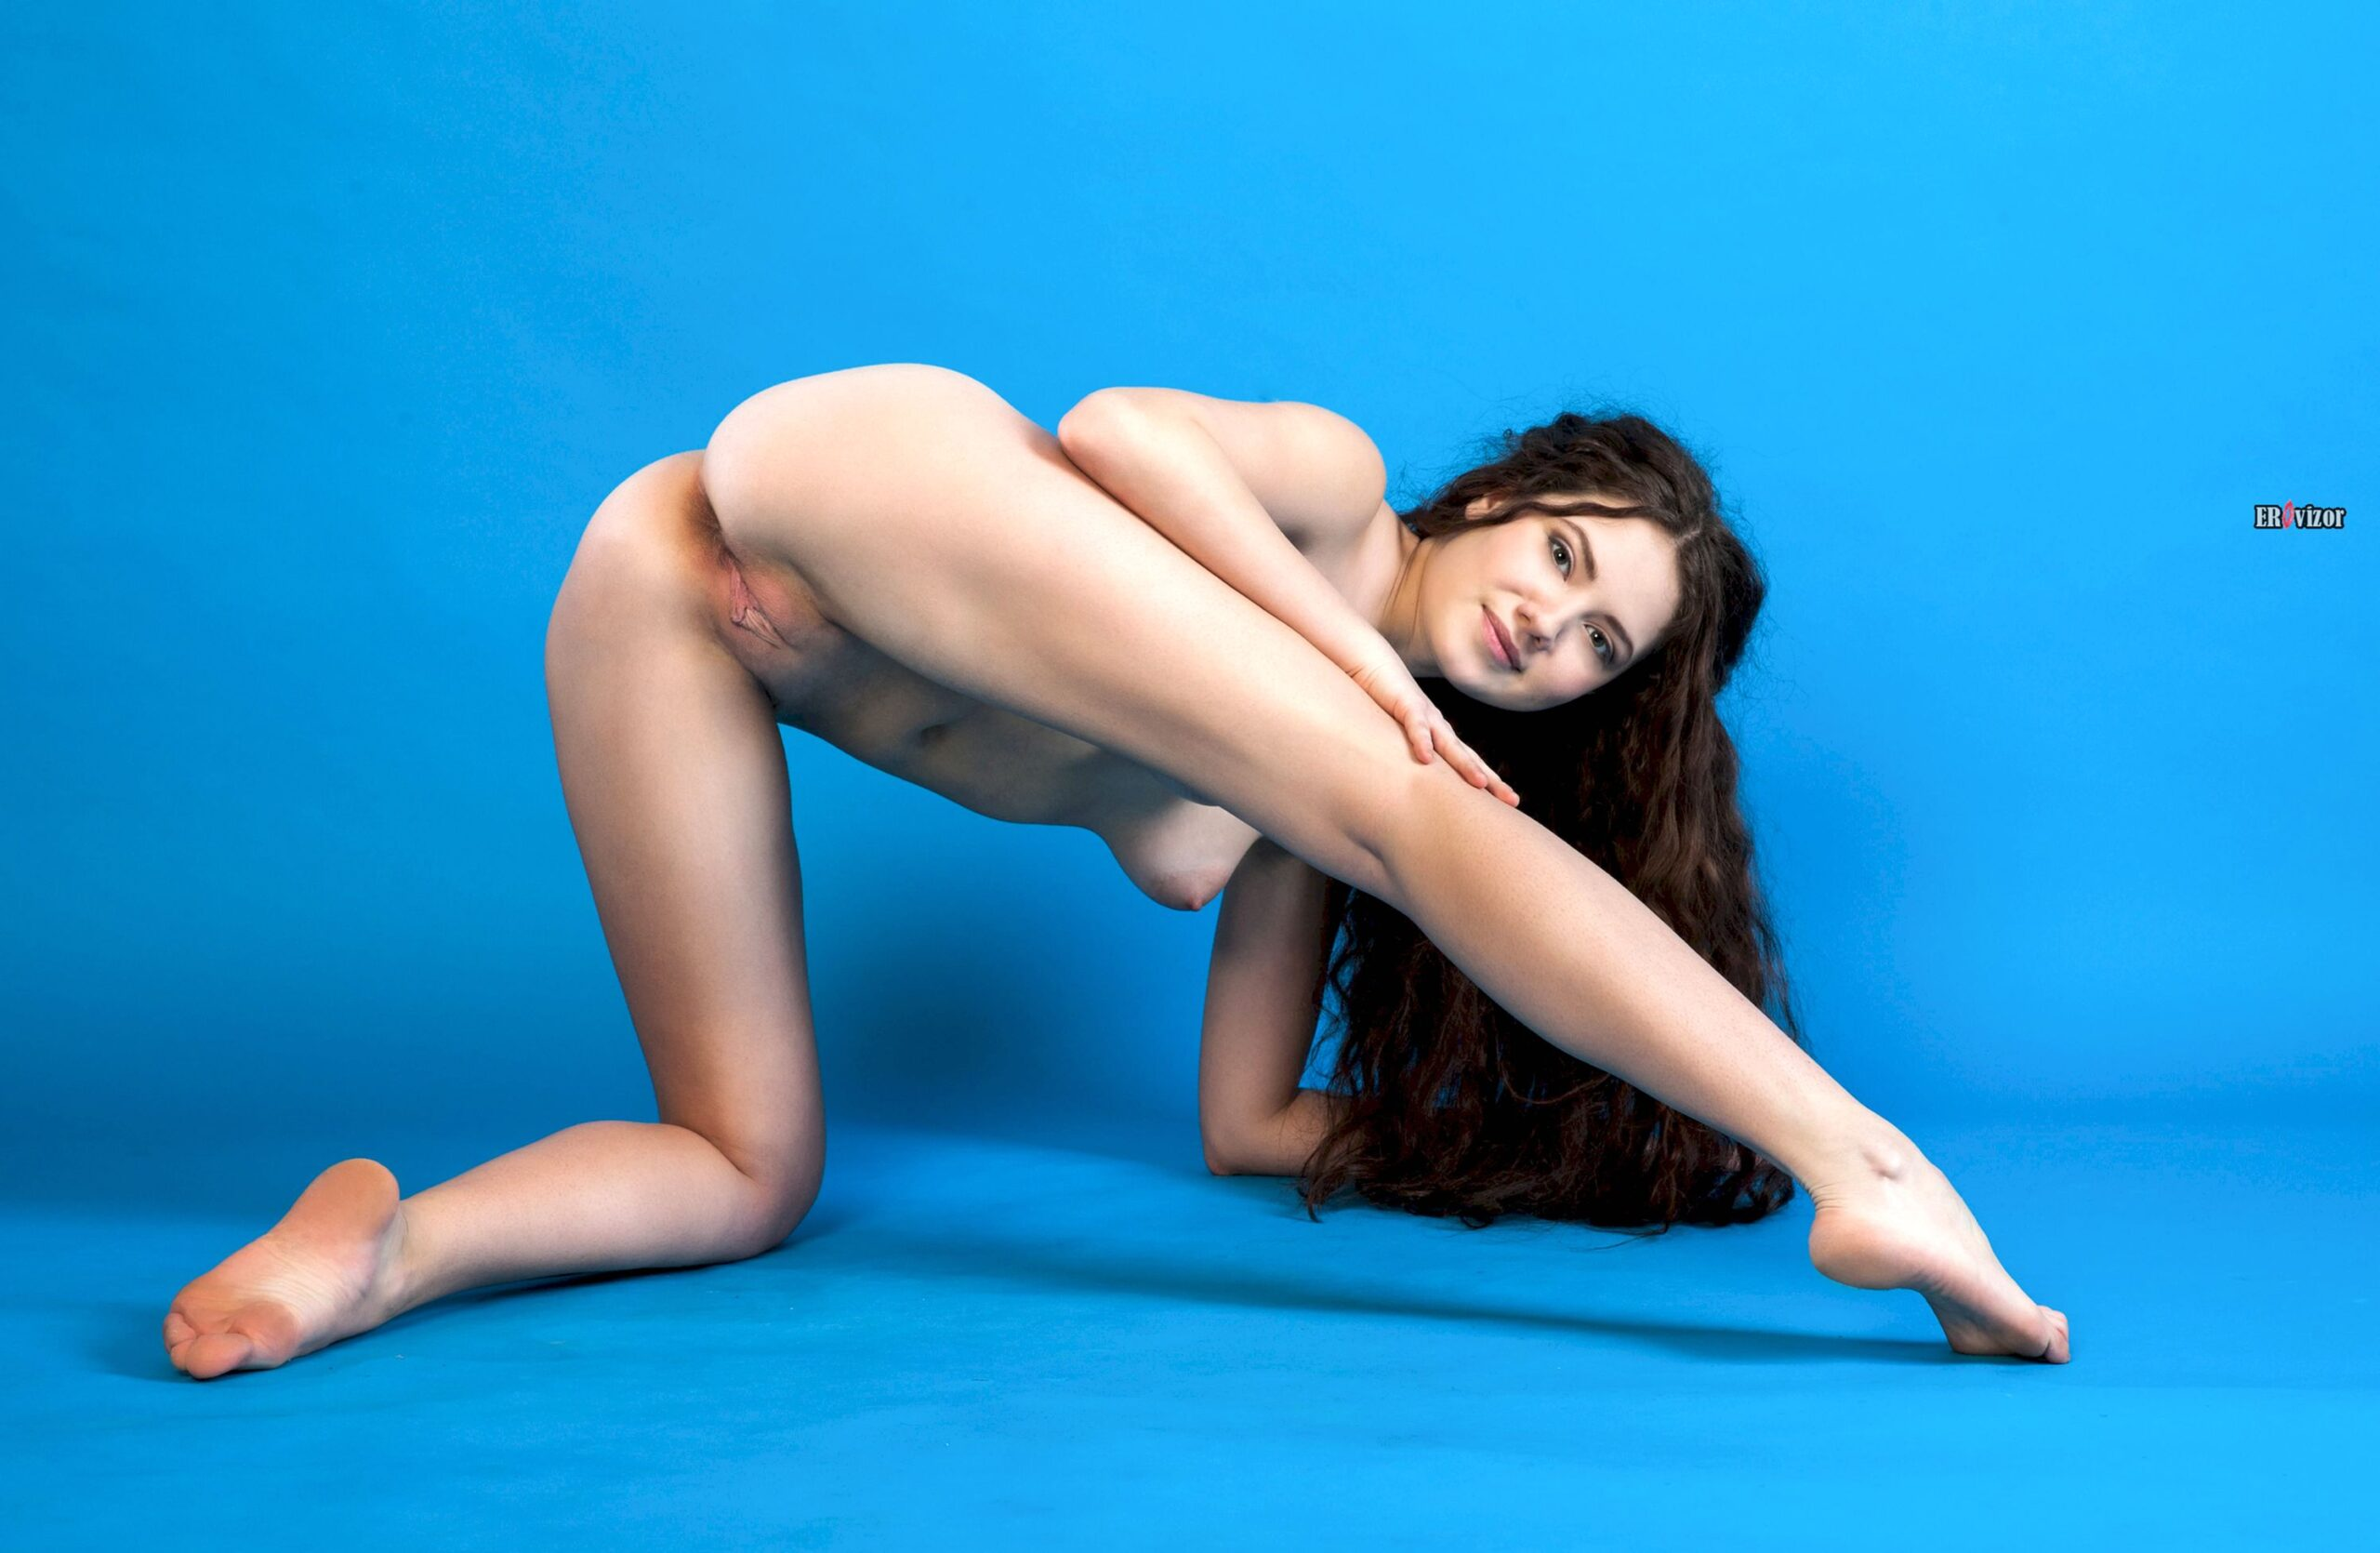 Nude-Shaved-Babe-Norma-Joel-with-Epic-Butthole-4